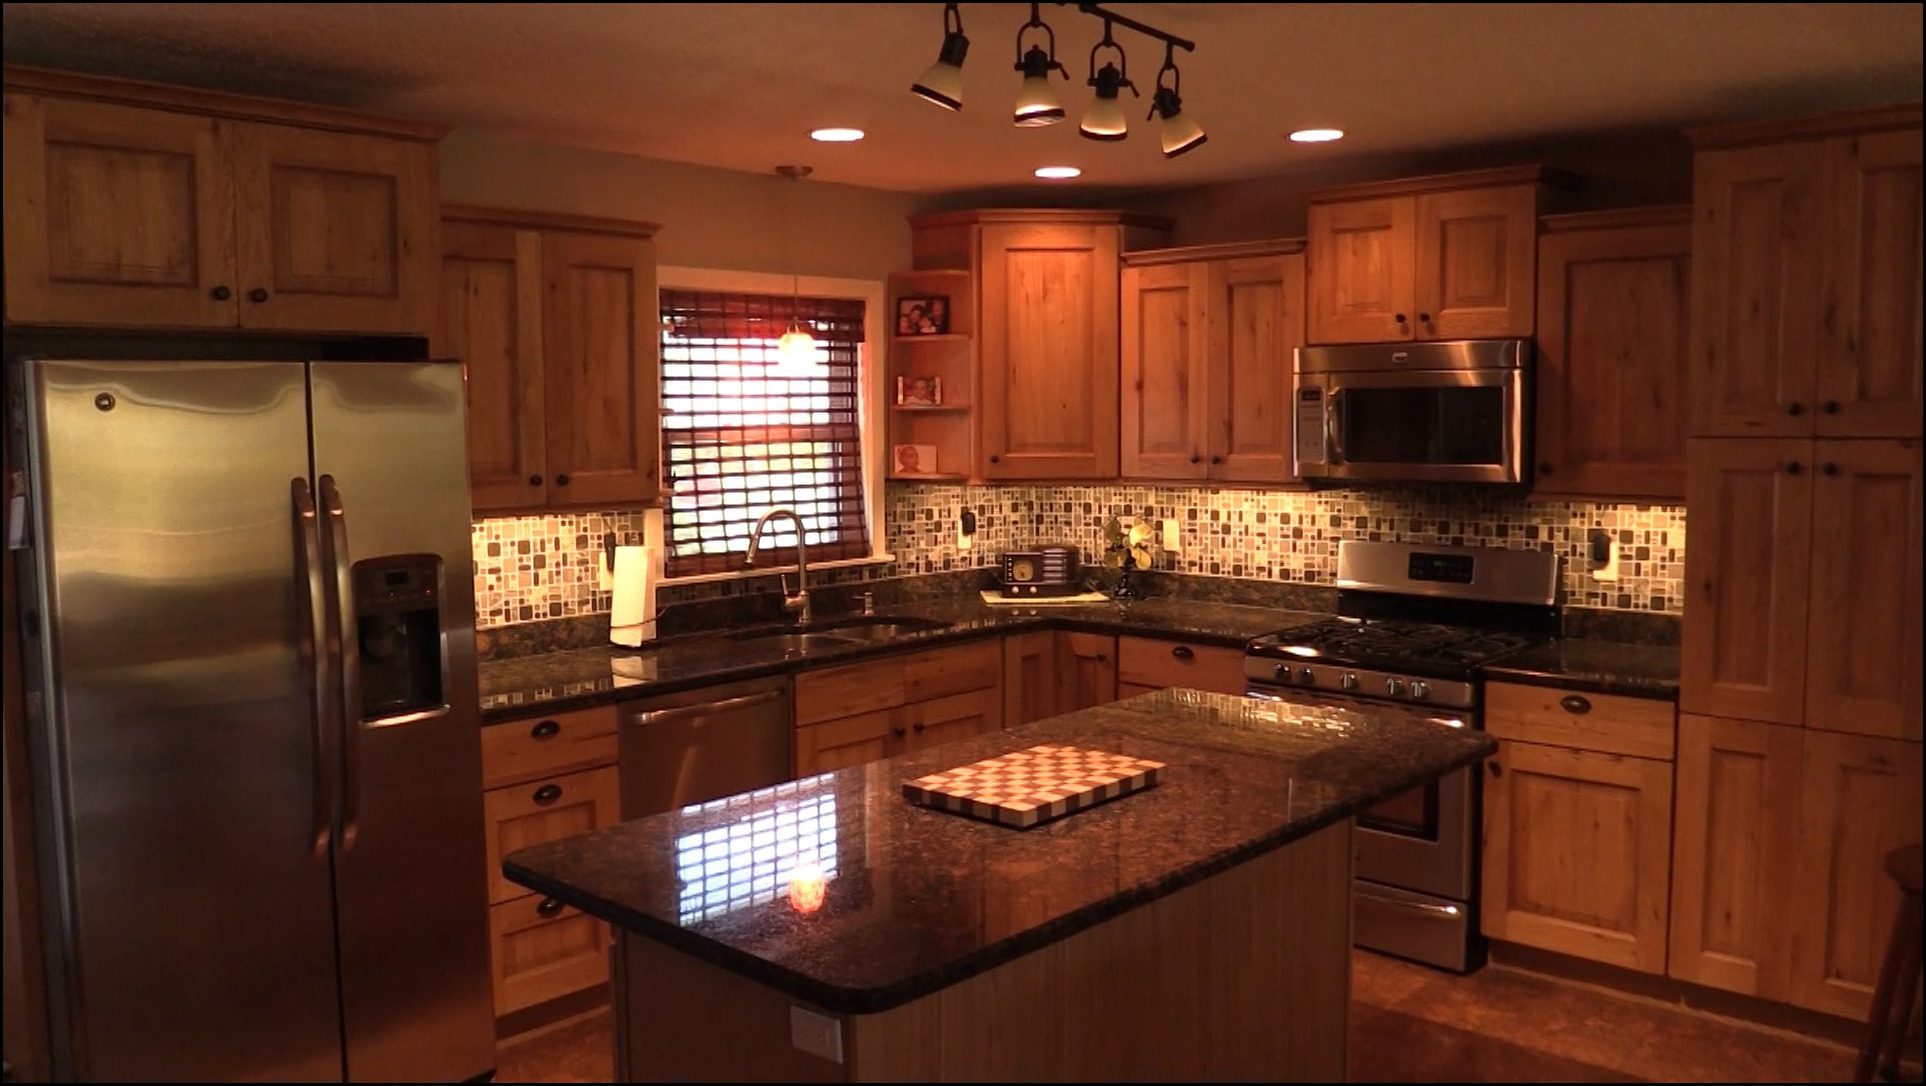 how to install lights under kitchen cabinets how to install lights kitchen cabinets 4 17072